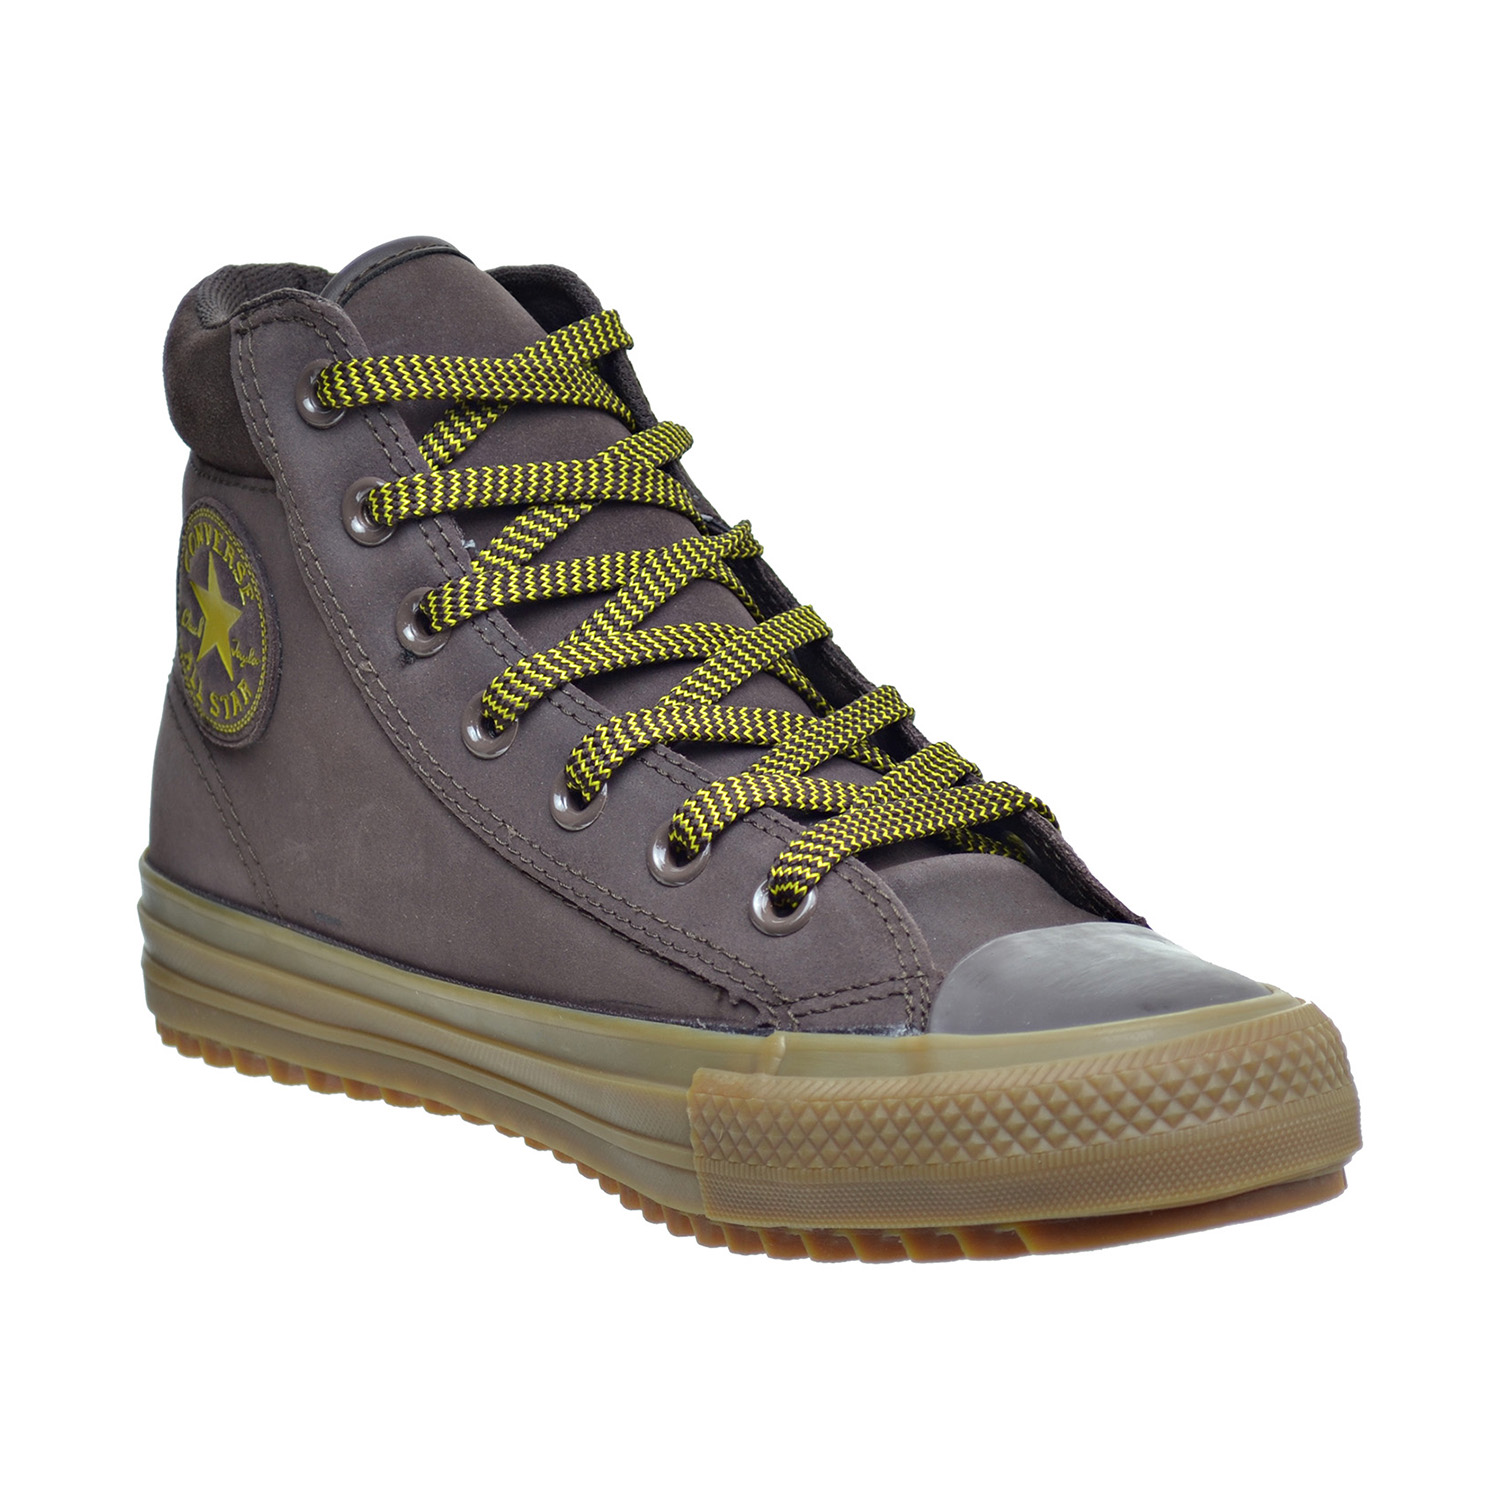 5d73123bff914b Details about Converse Chuck Taylor All Star PC High Top Men s Boots Burnt  Umber Lemon 153674C